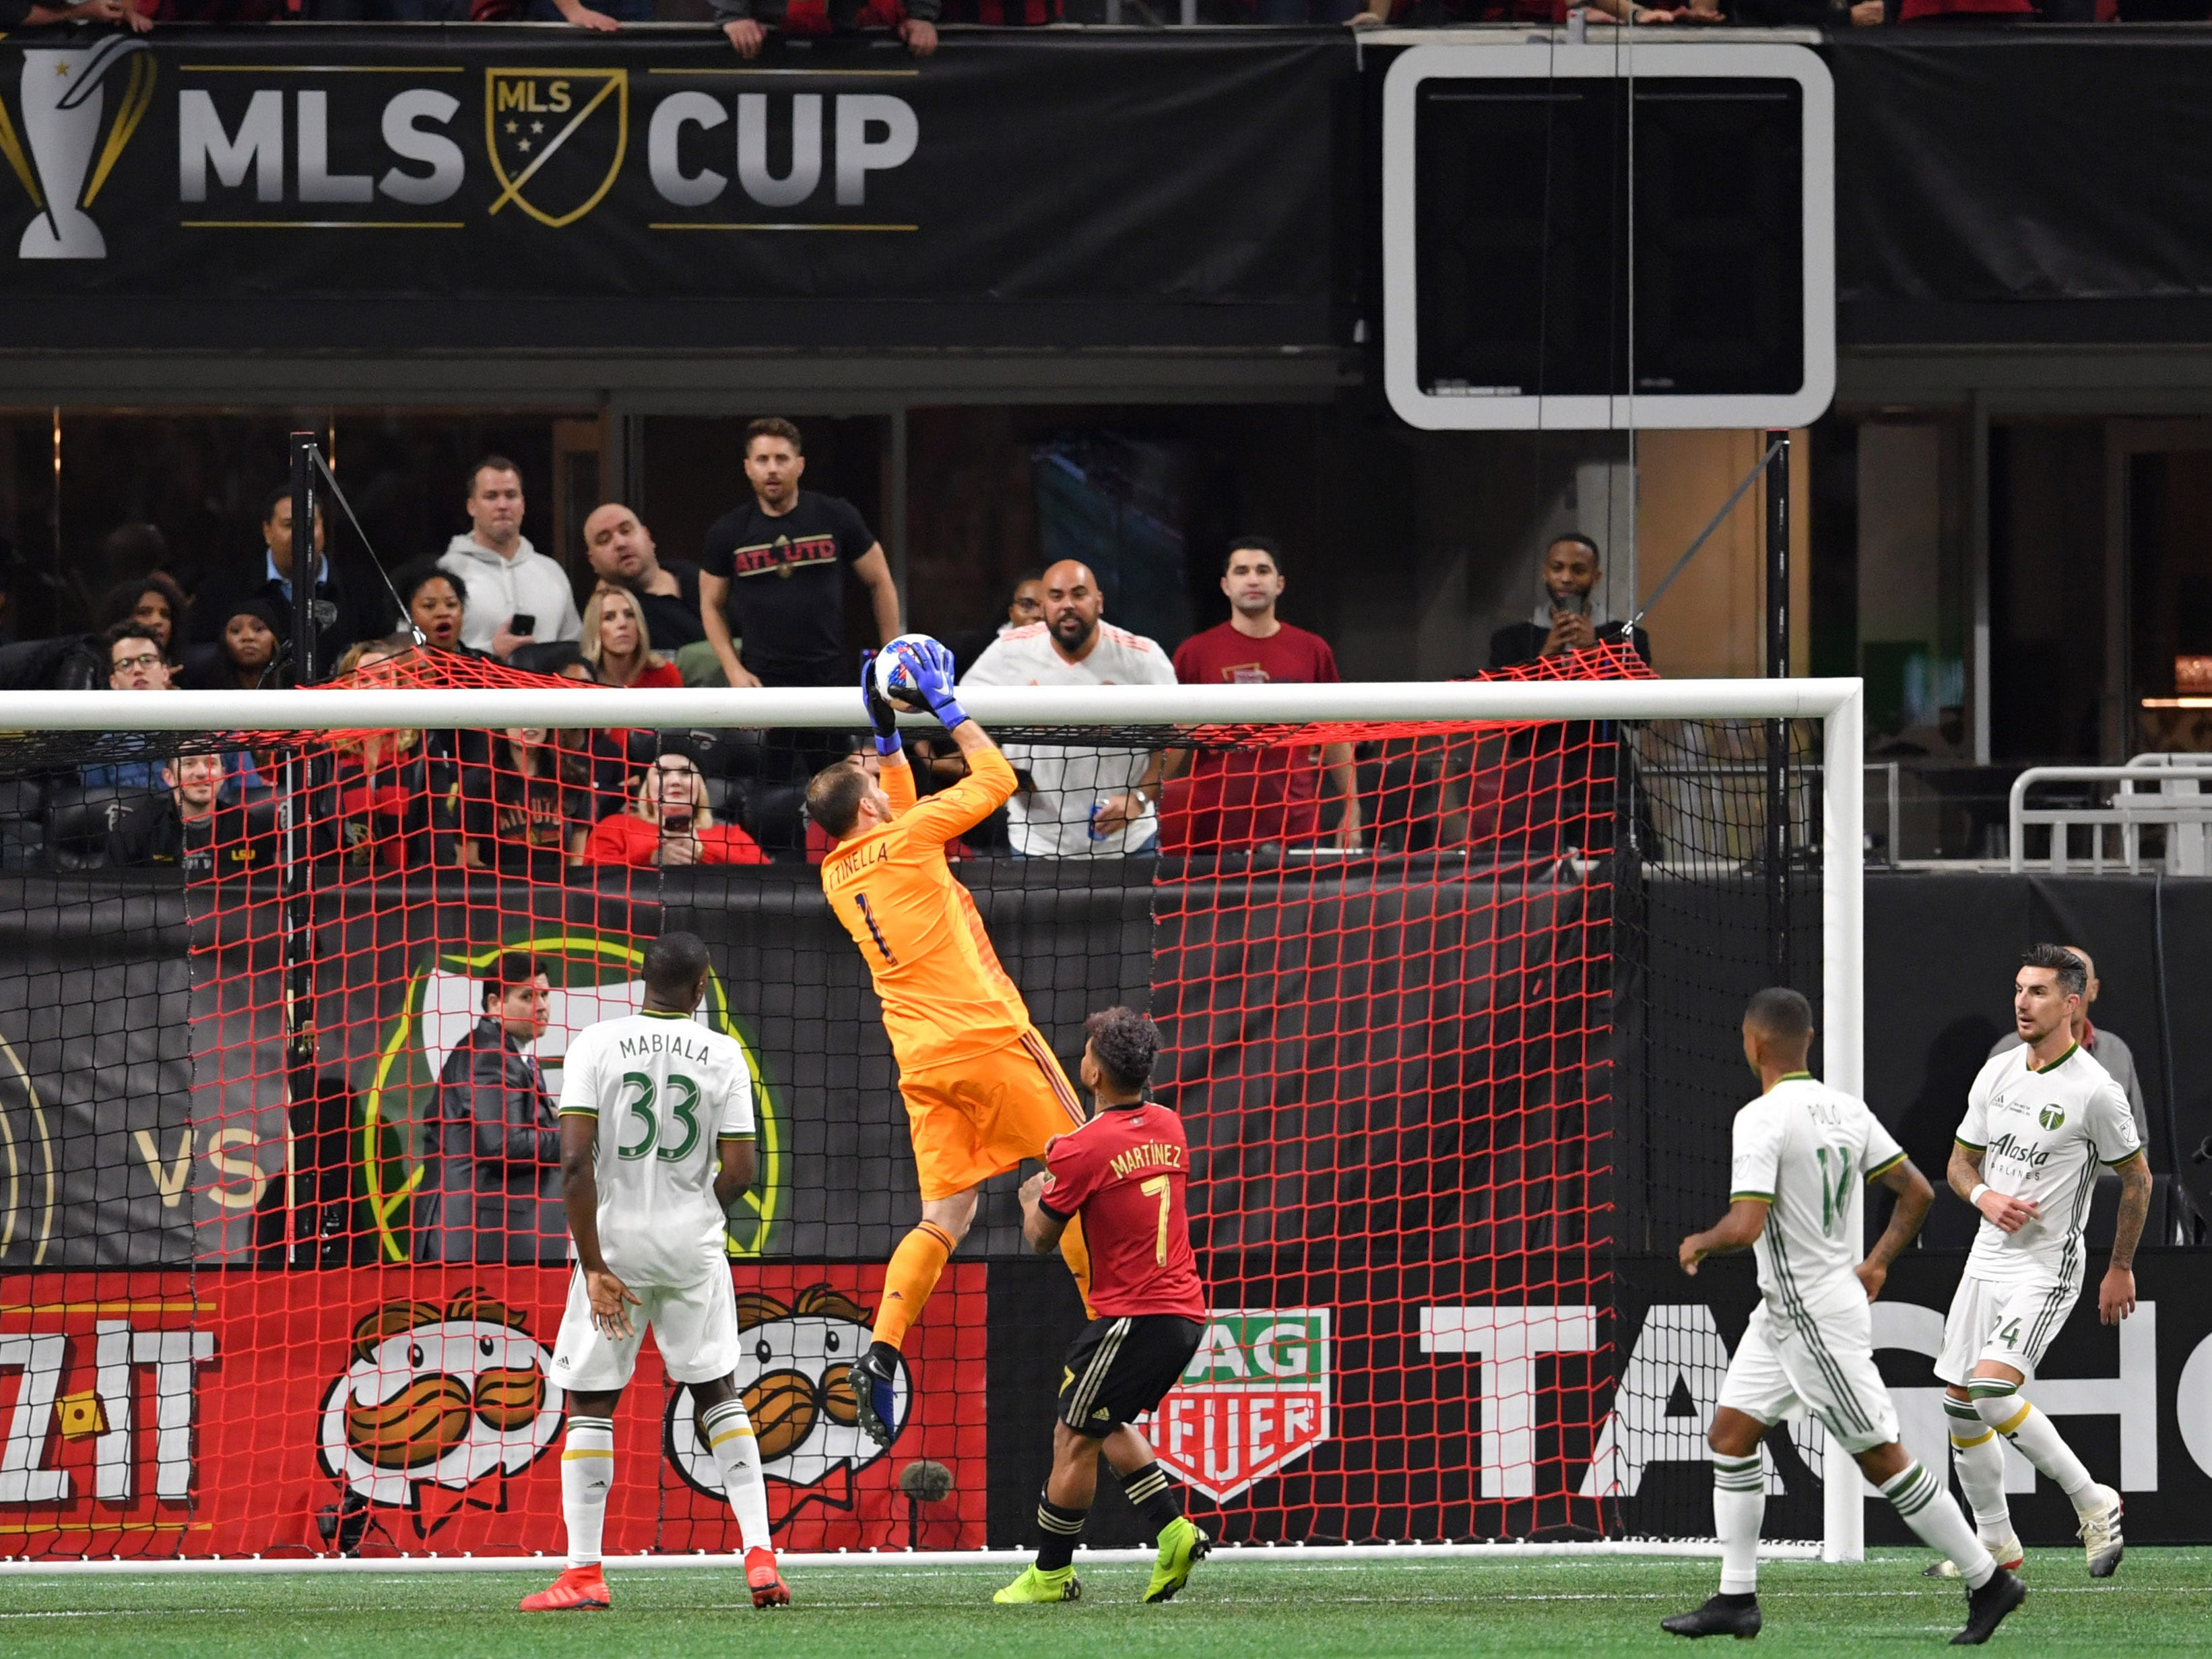 Portland Timbers goalkeeper Jeff Attinella makes a save against Atlanta United during the first half in the 2018 MLS Cup at Mercedes-Benz Stadium.